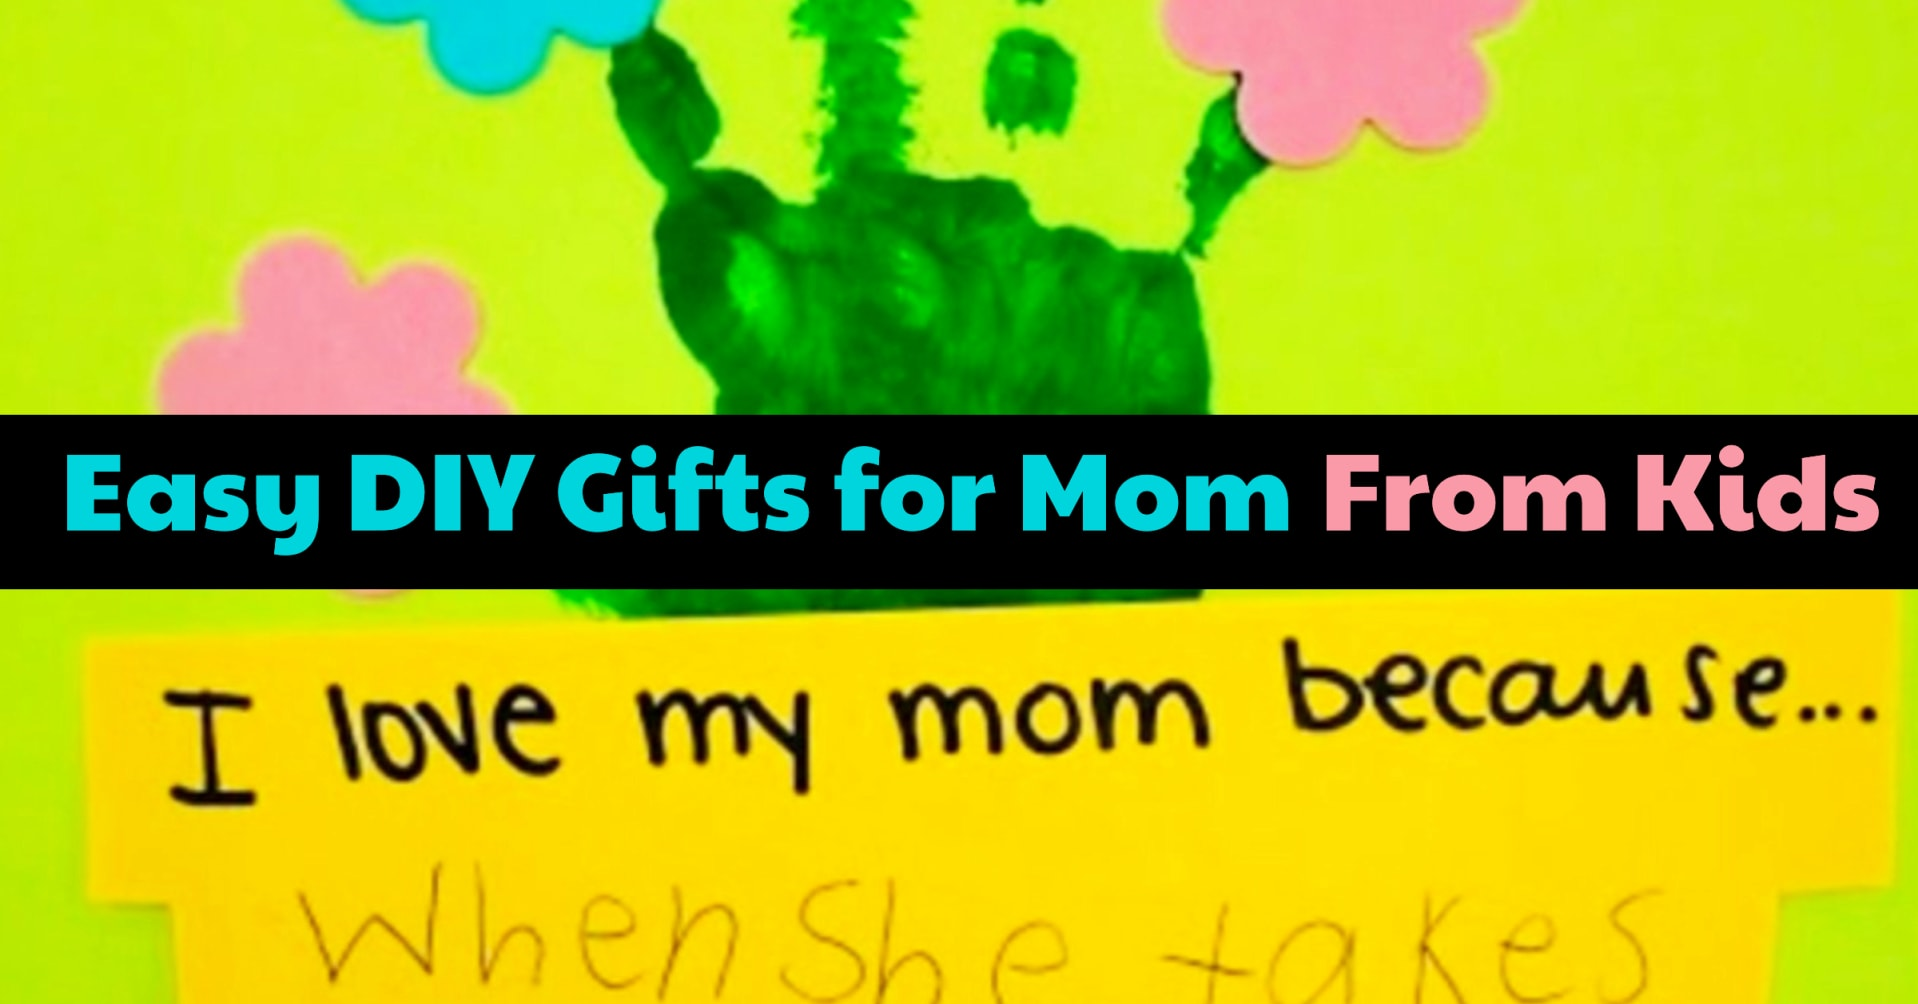 Easy DIY gifts for mom from kids - gift ideas for mom kids can make